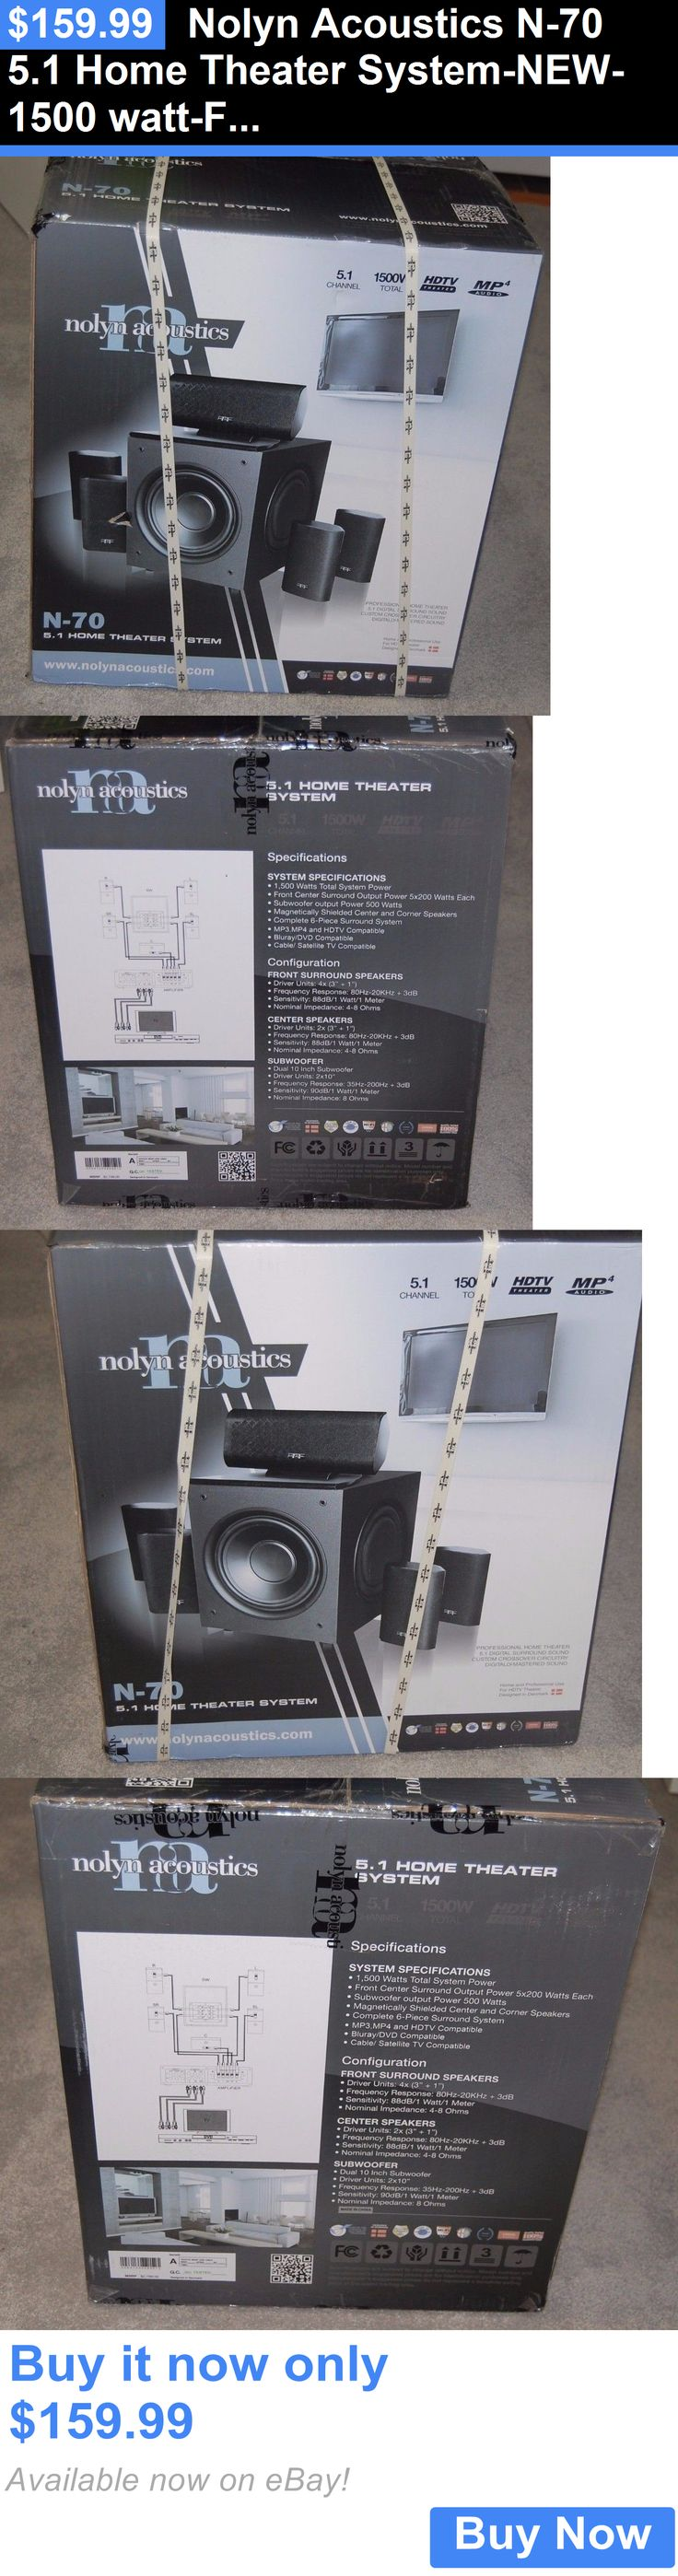 Home Theater Systems: Nolyn Acoustics N-70 5.1 Home Theater System-New-1500 Watt-Free Ship BUY IT NOW ONLY: $159.99